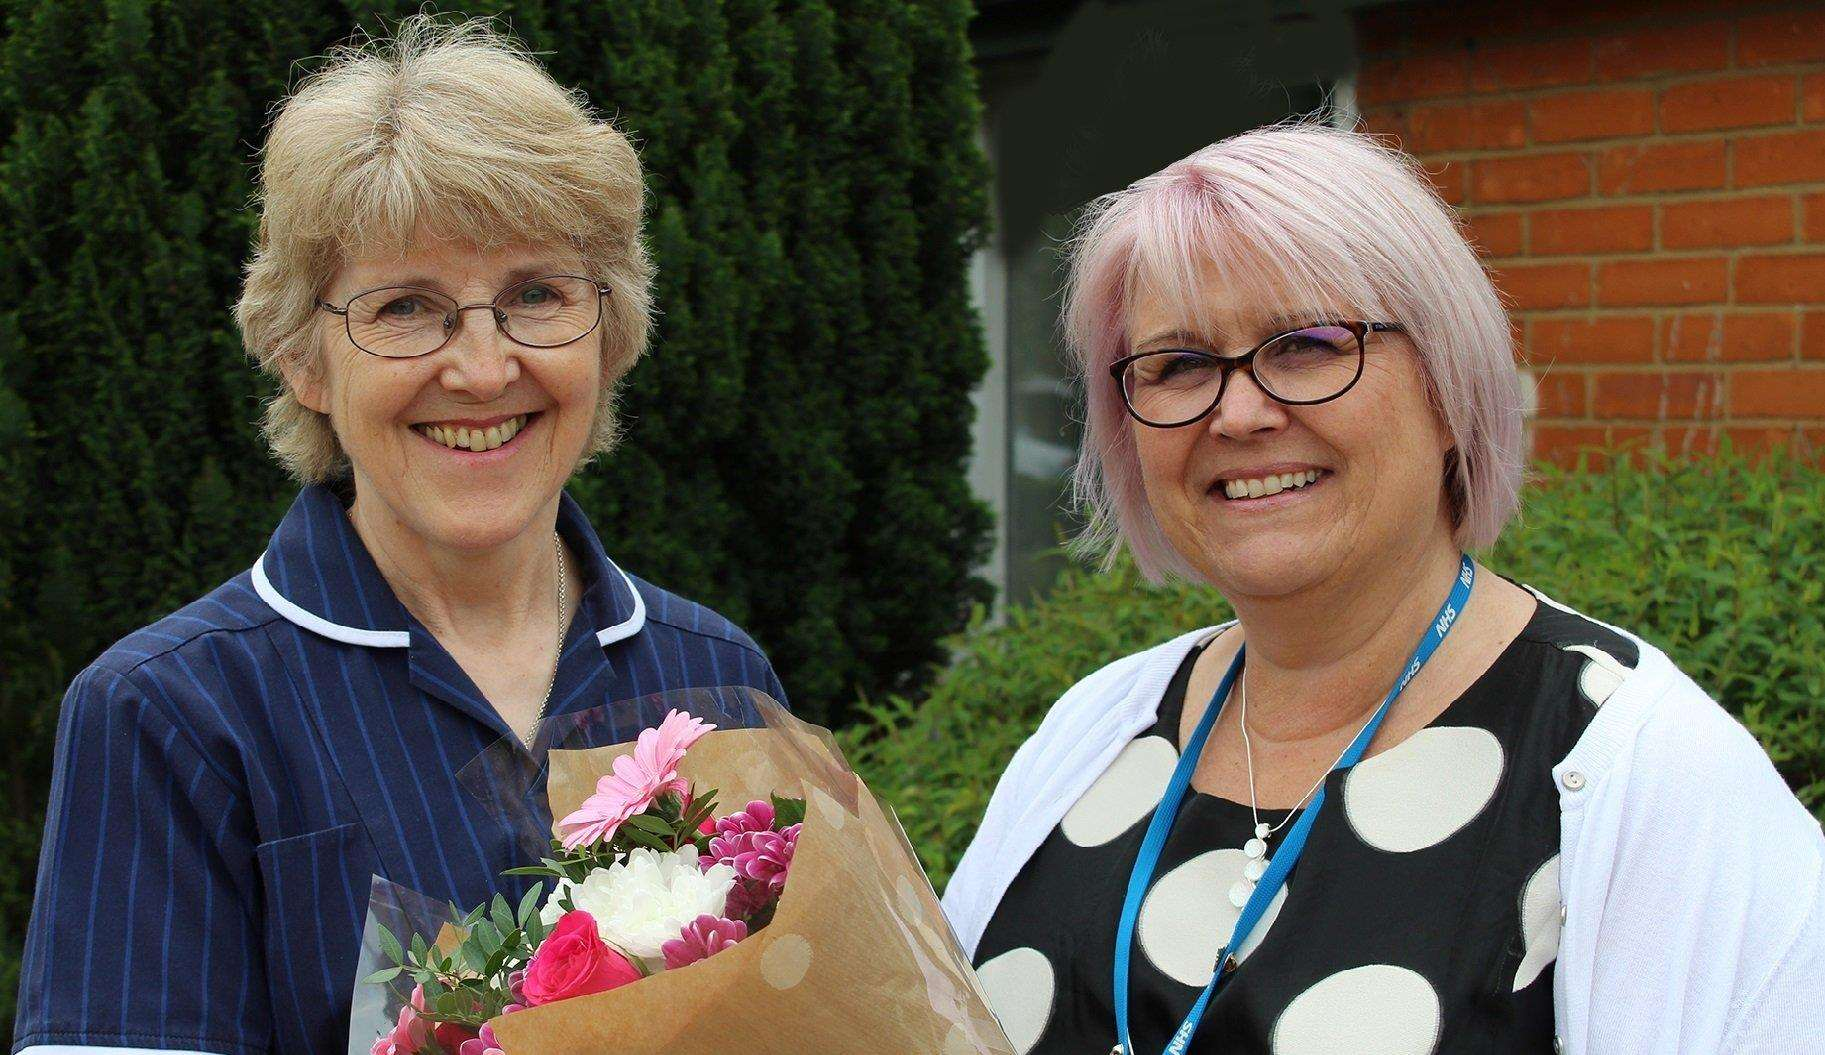 Nurse practitioner Sarah Beart is celebrating 40 years with the NHS with Sarah Jane Ward director of nursing and quality assurance at West Norfolk CCG